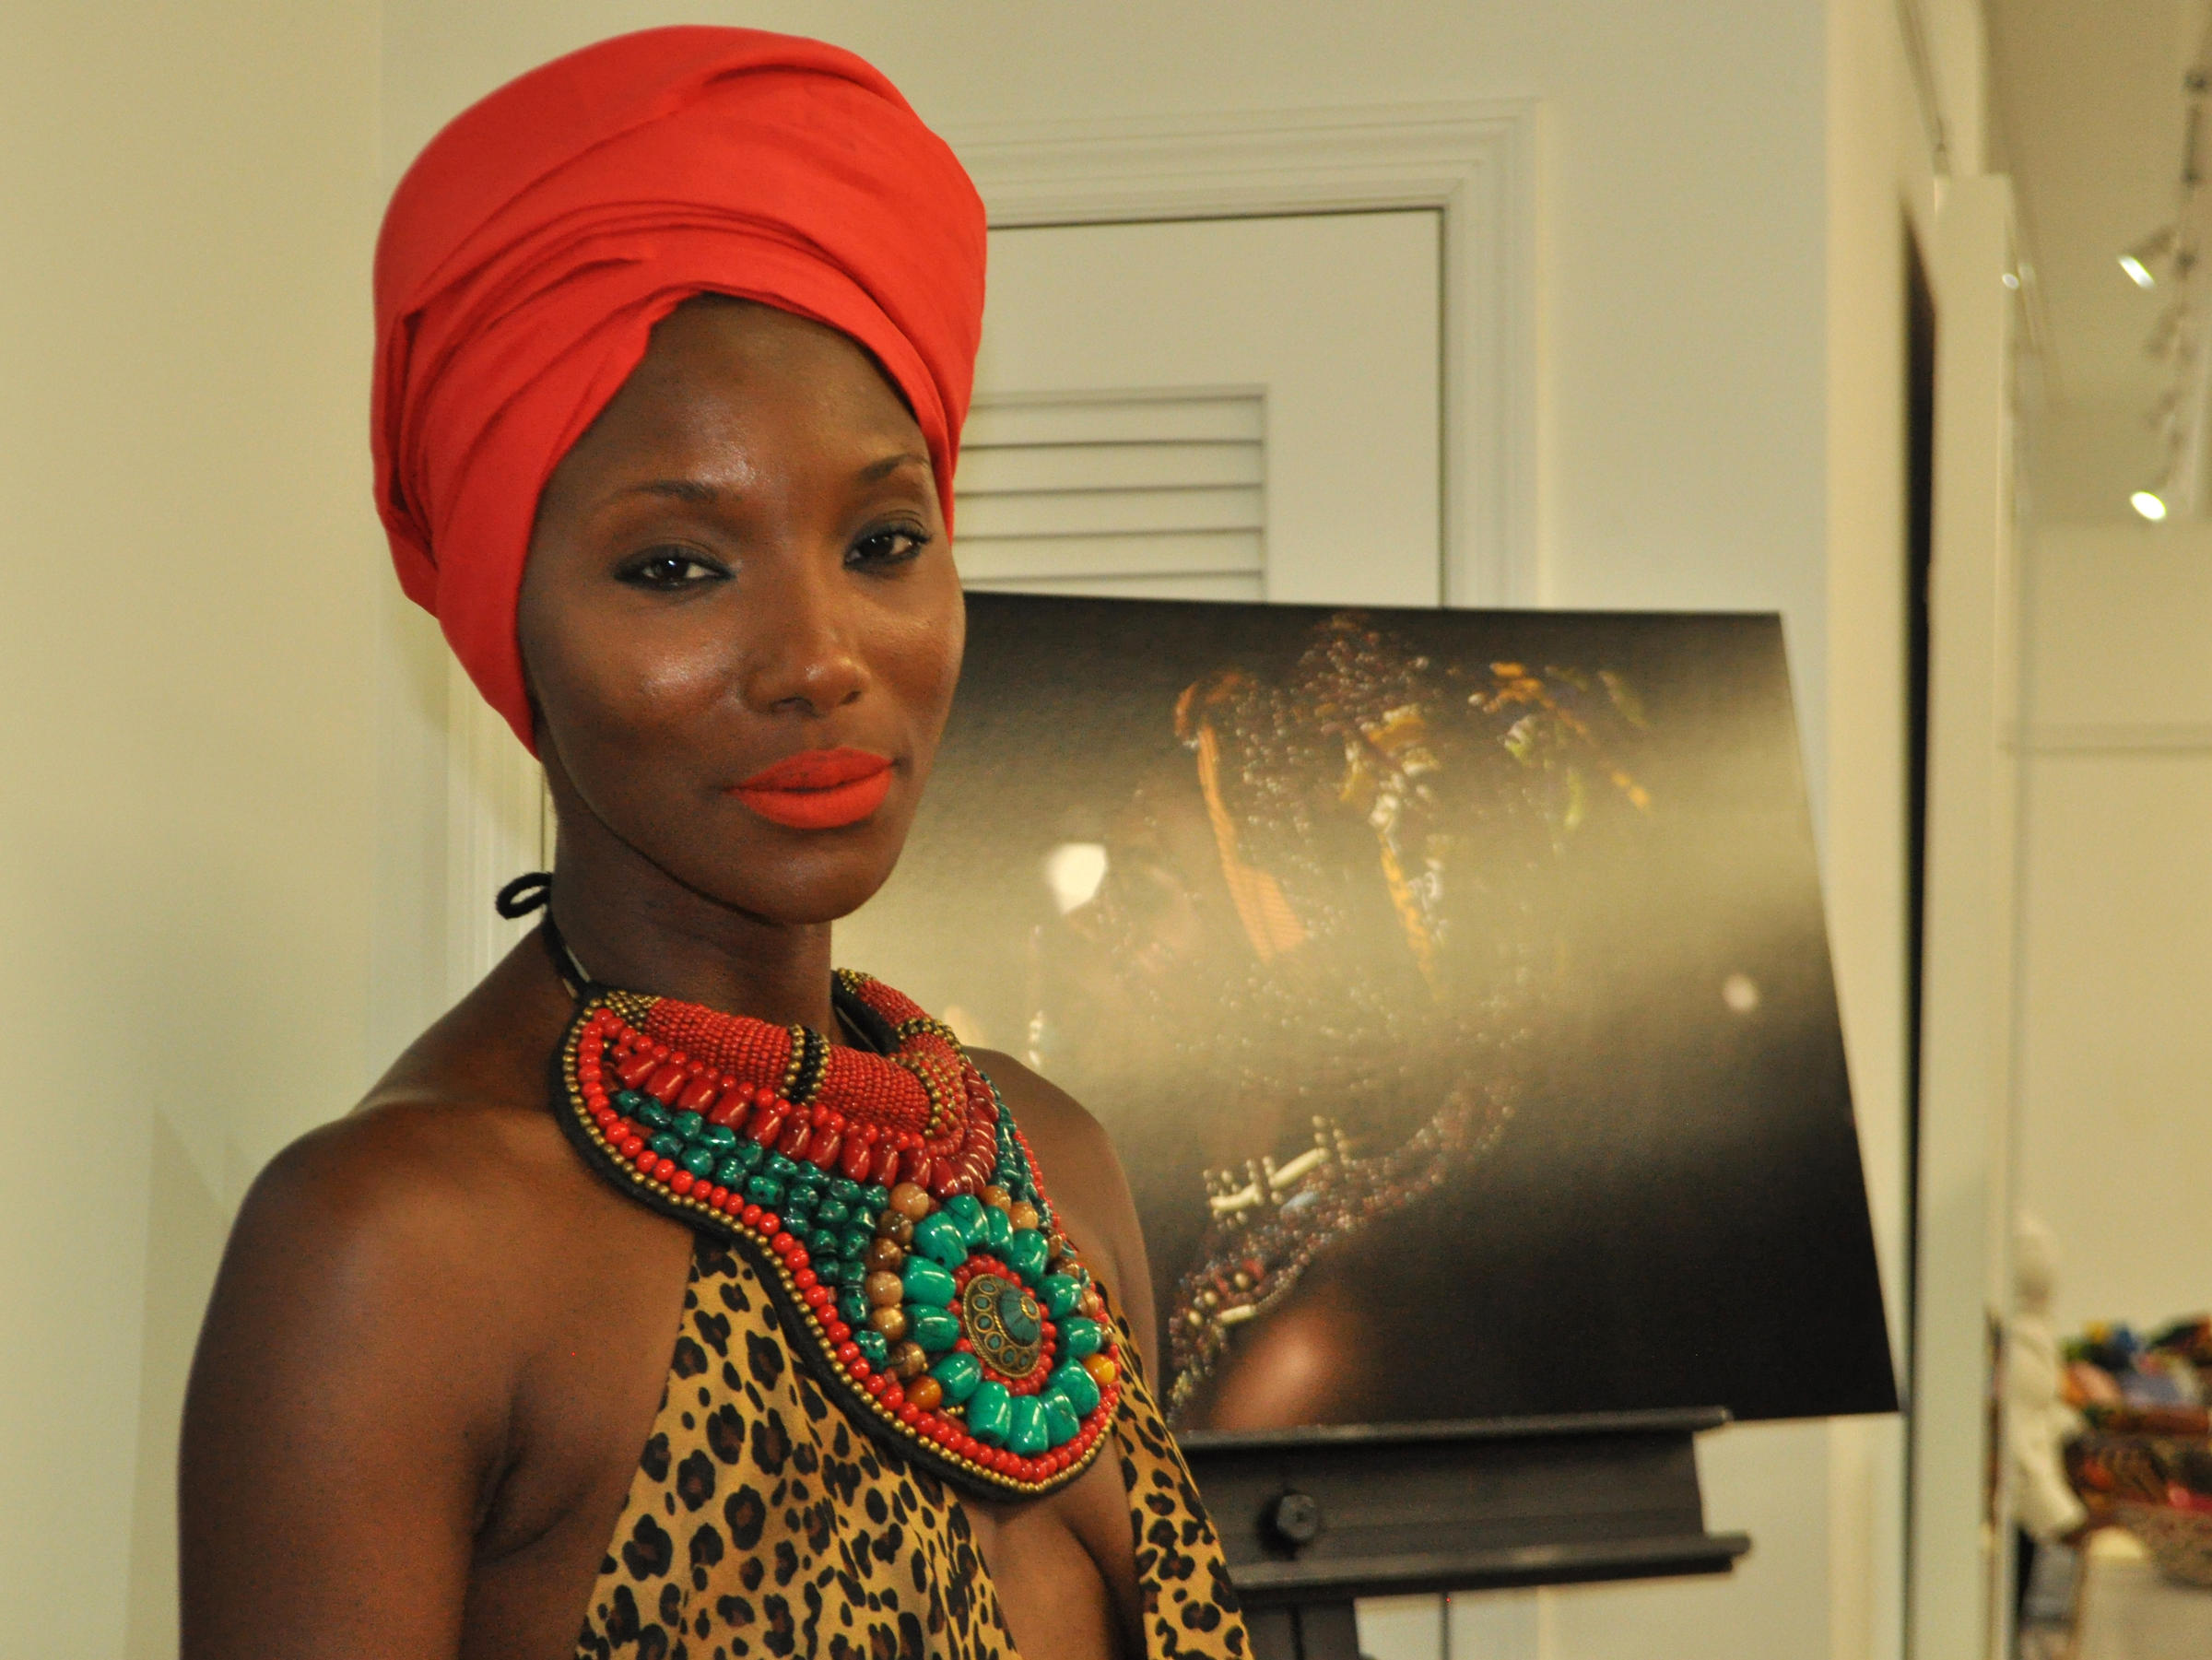 African Inspired Headwraps Evoke Pride Rooted In History